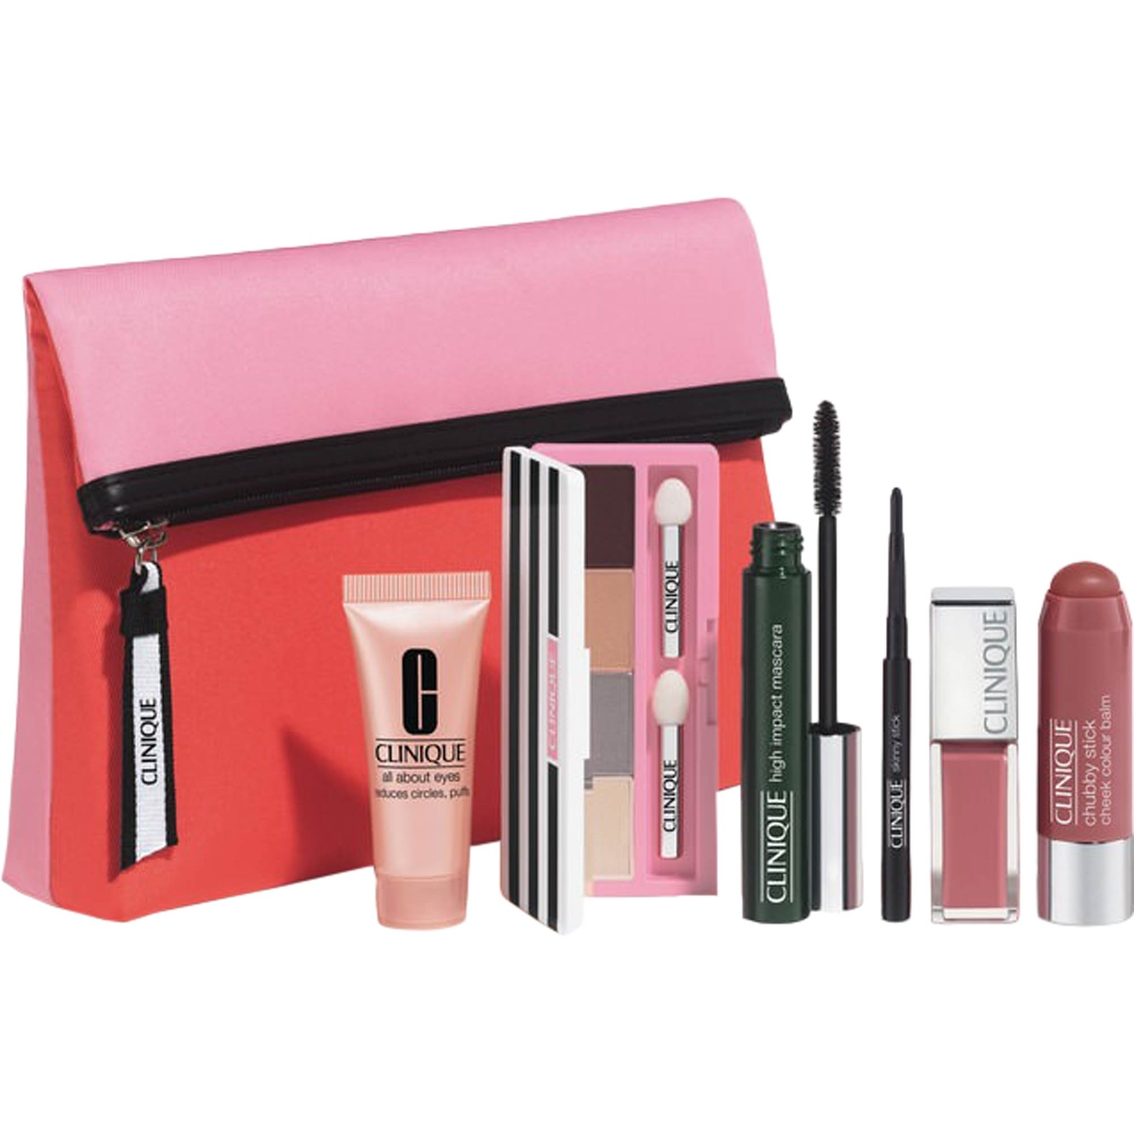 Clinique the sweetest thing makeup gift sets beauty